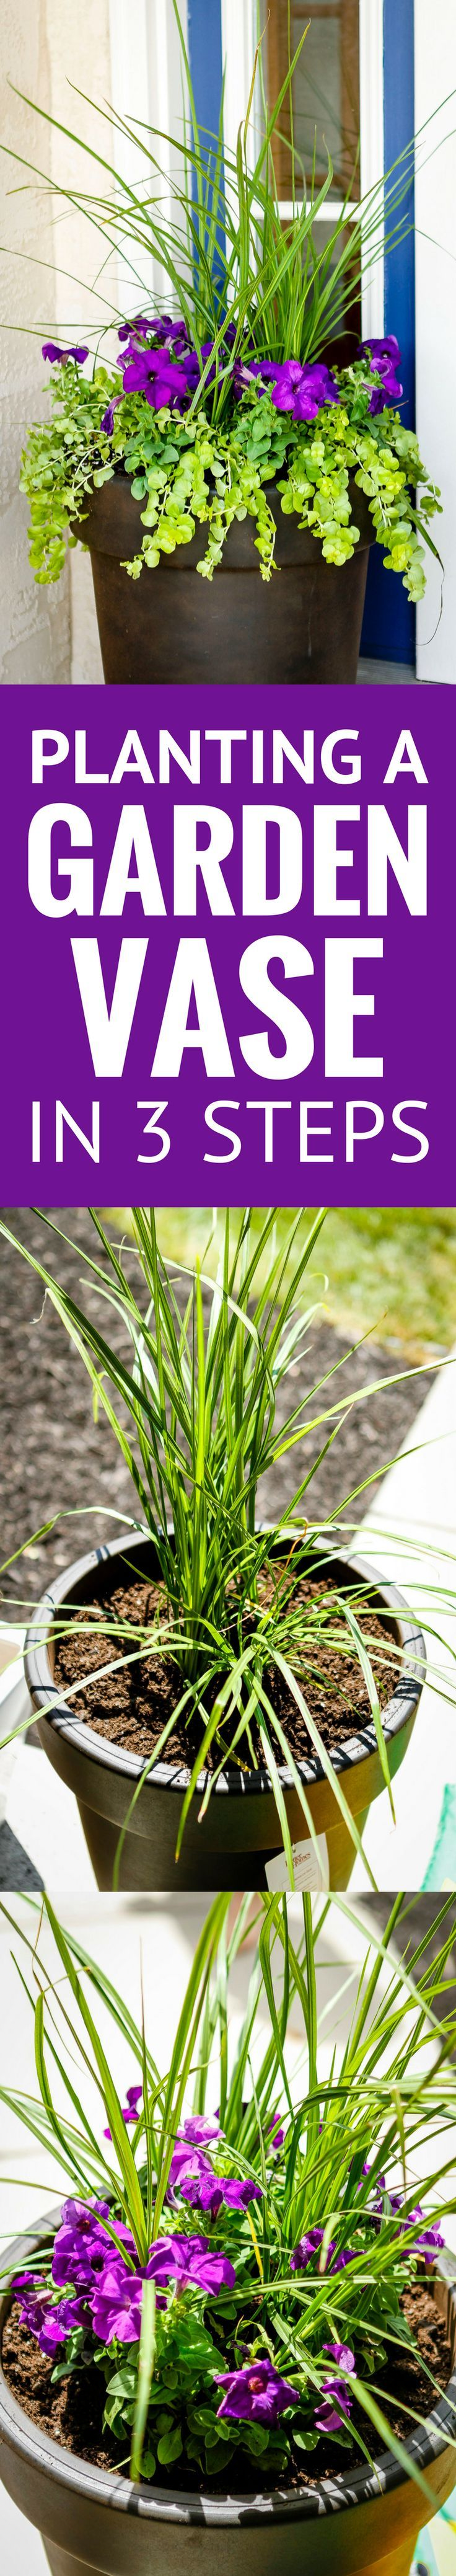 17 Best ideas about How To Plant Flowers on Pinterest Companion